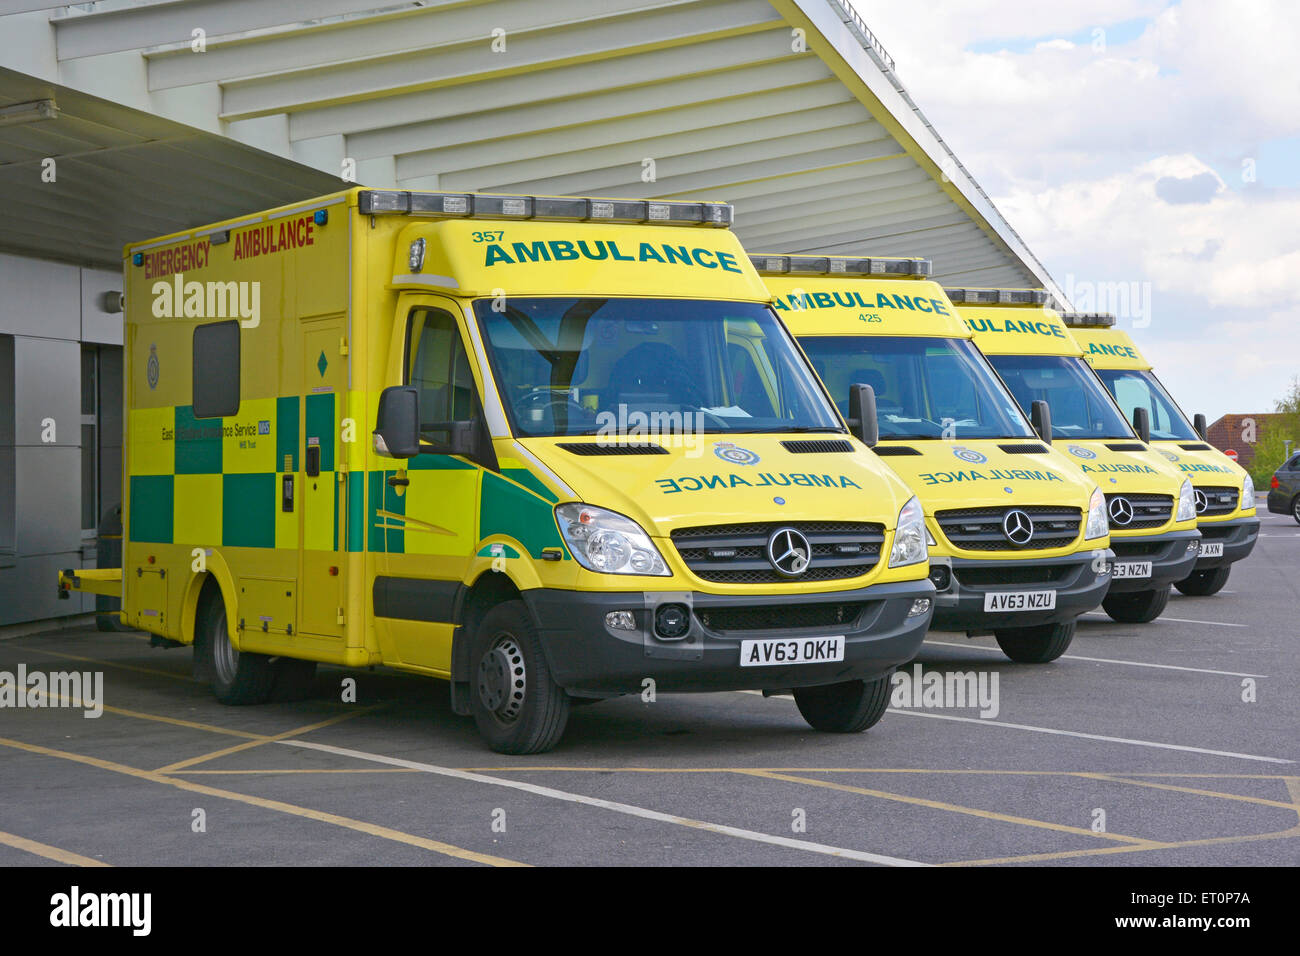 6d51566a9d1f43 East Of England ambulance service Mercedes Benz NHS ambulances parked  outside hospital accident and emergency department